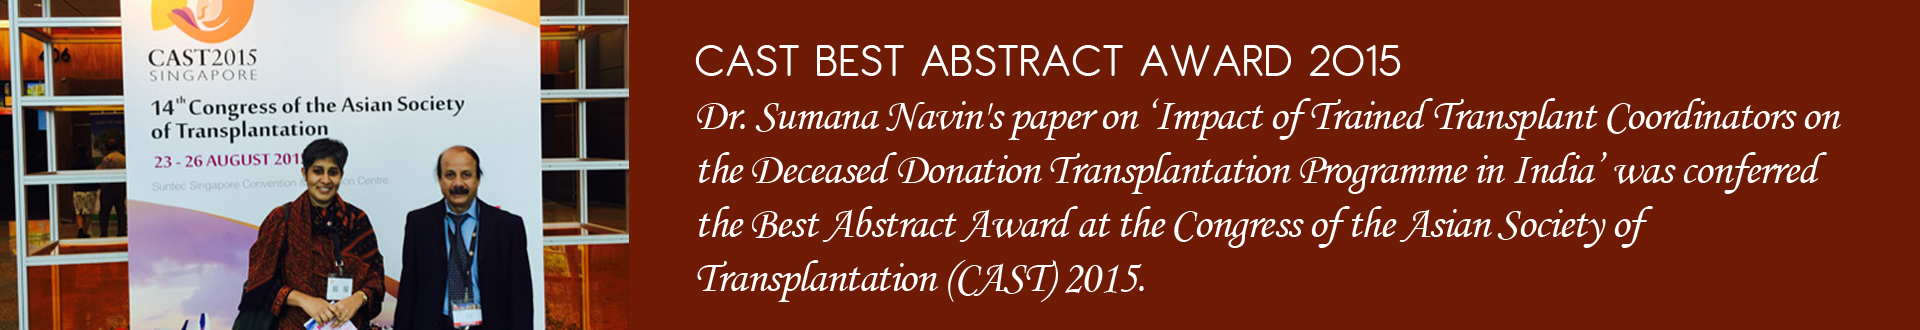 CAST BEST ABSTRACT AWARD 2015